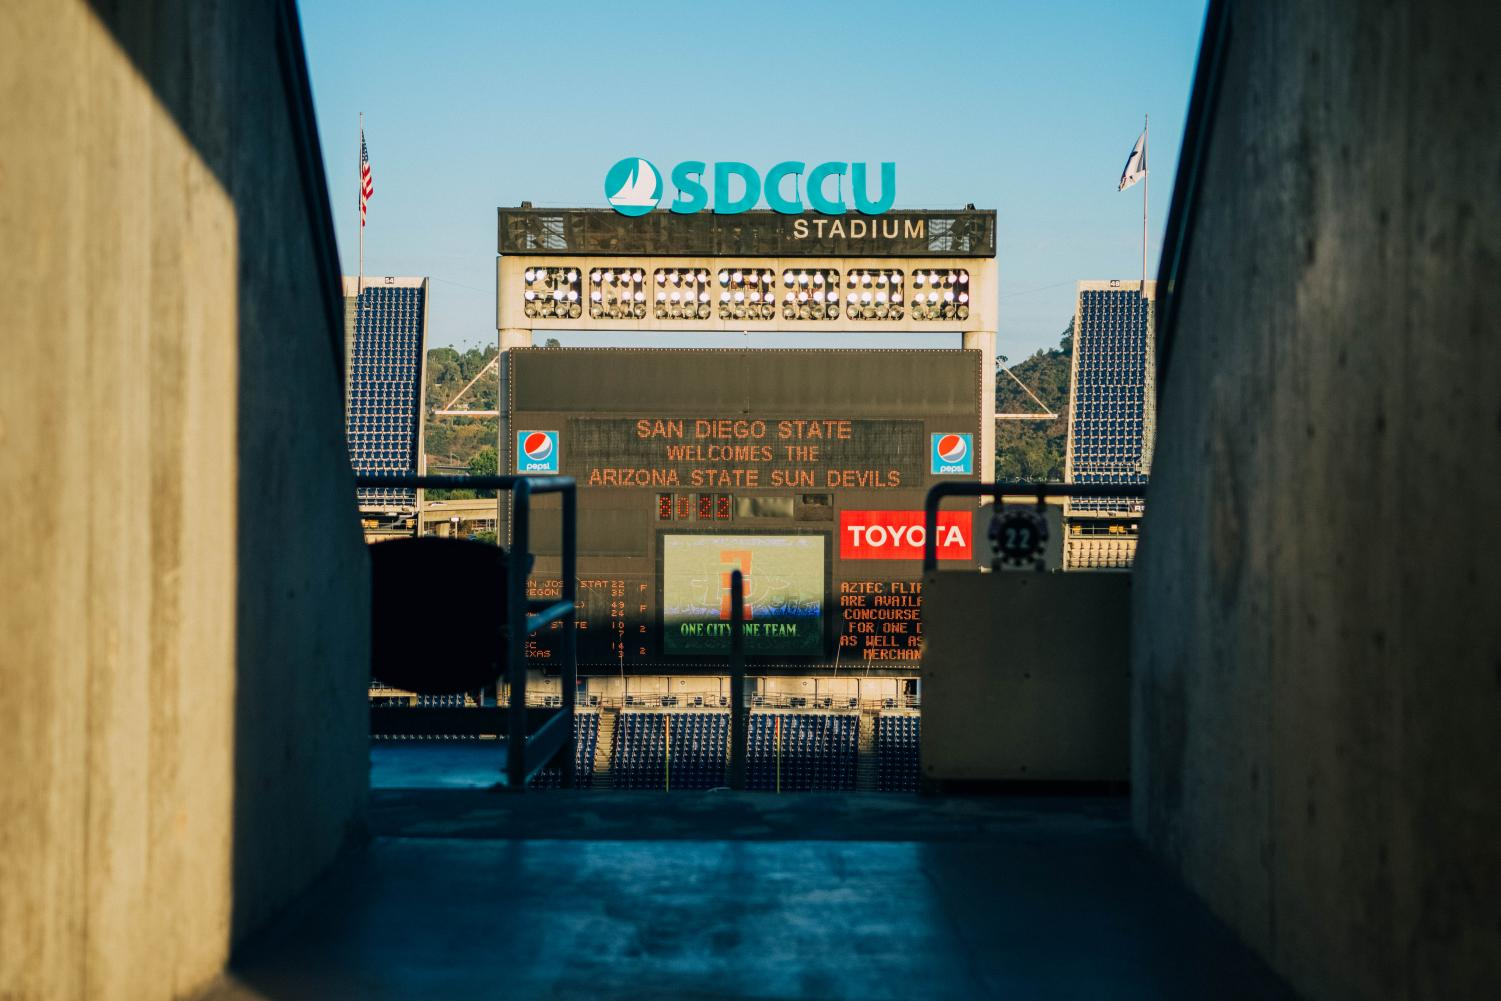 The SoccerCity and SDSU West initiatives will face off in November in hopes of developing on the site of the SDCCU stadium in Mission Valley.